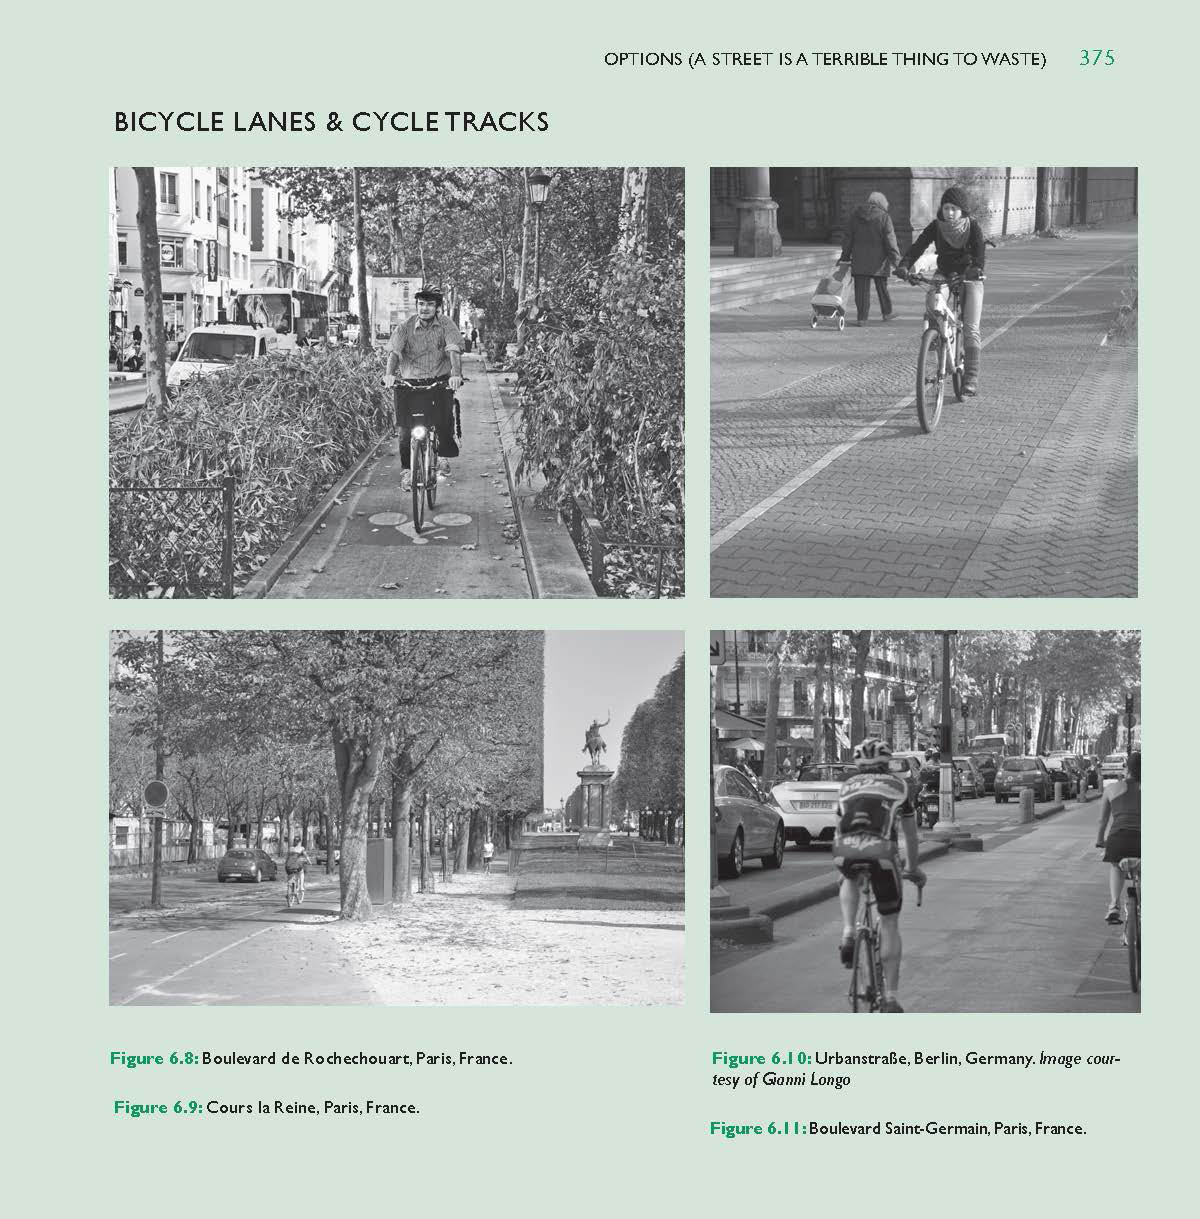 A few bike lanes in Europe, Street Design, The Secret to Great Cities and Towns, page 375